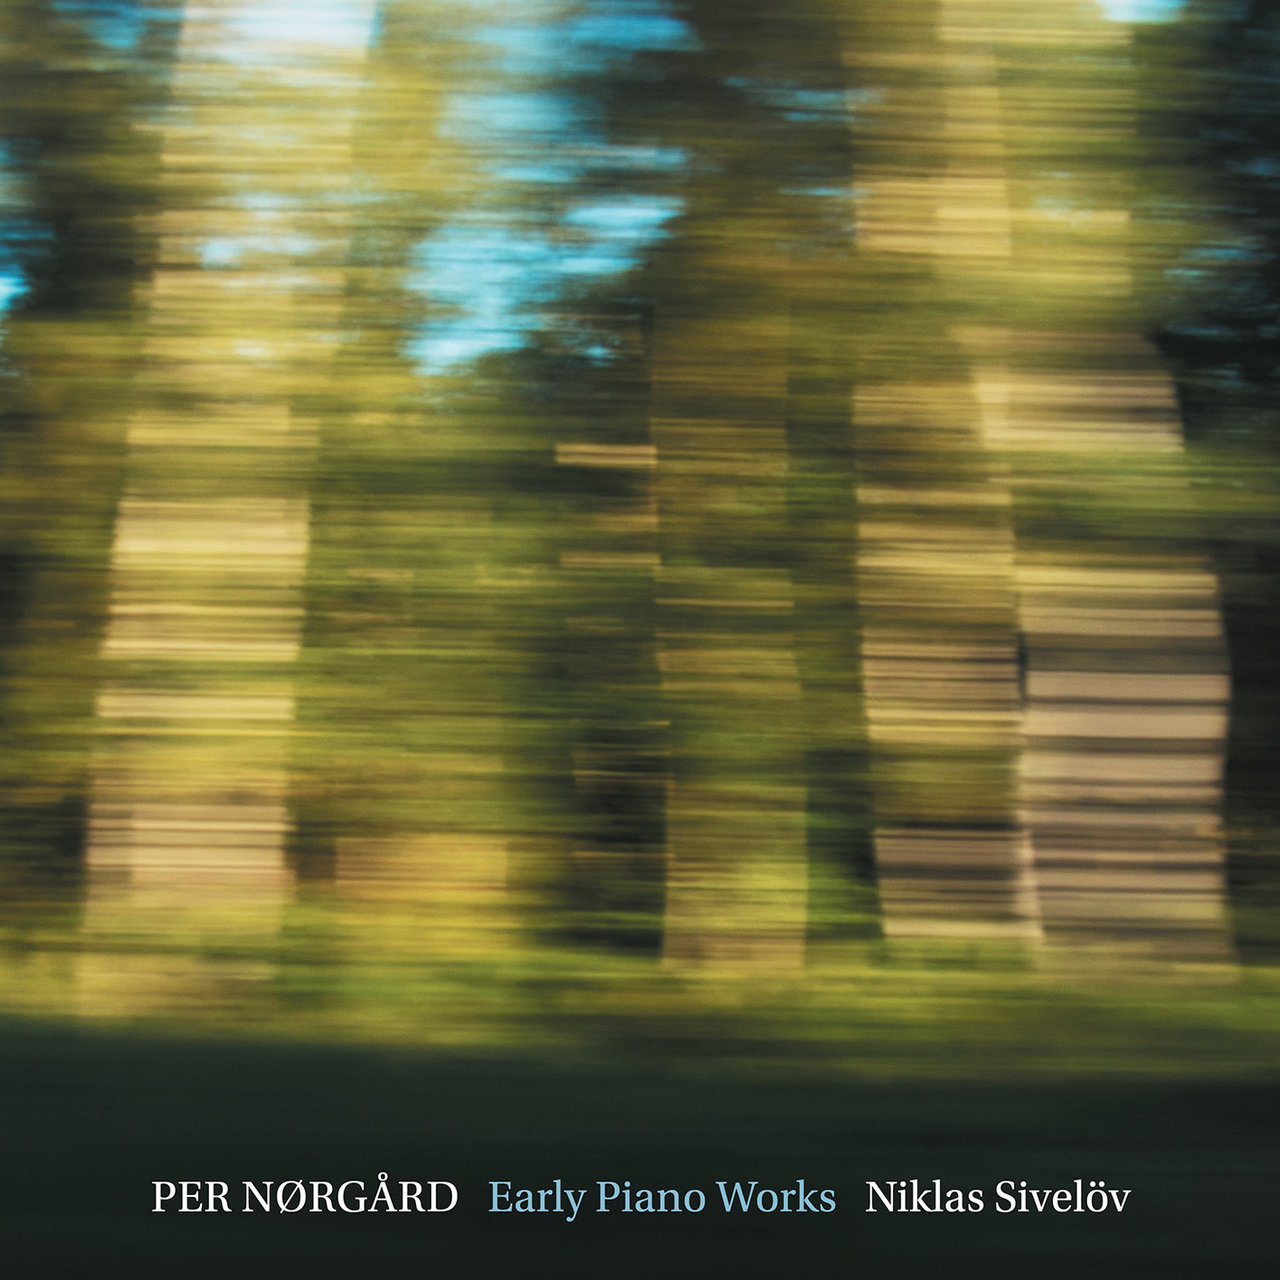 Per Nørgård: Early Piano Works